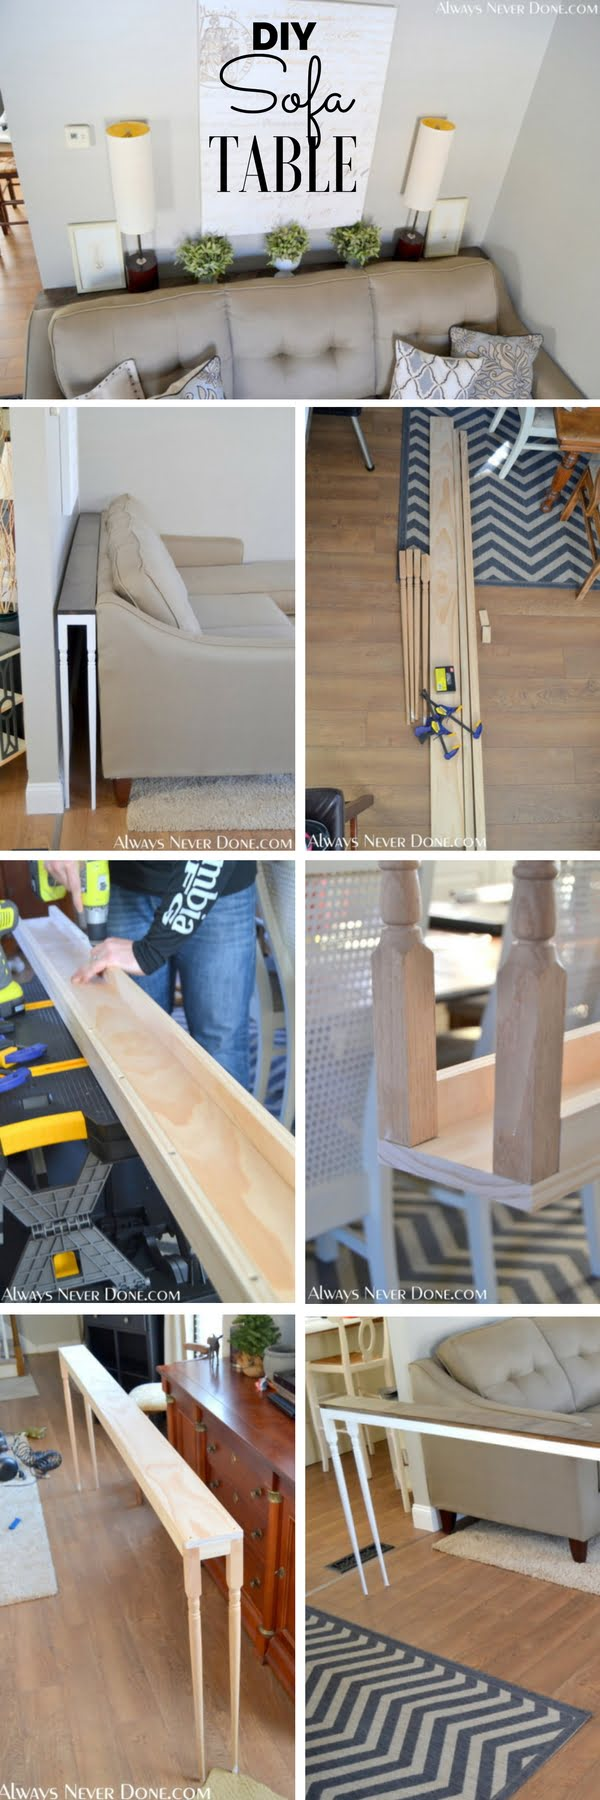 Check out the tutorial: #DIY Sofa Table